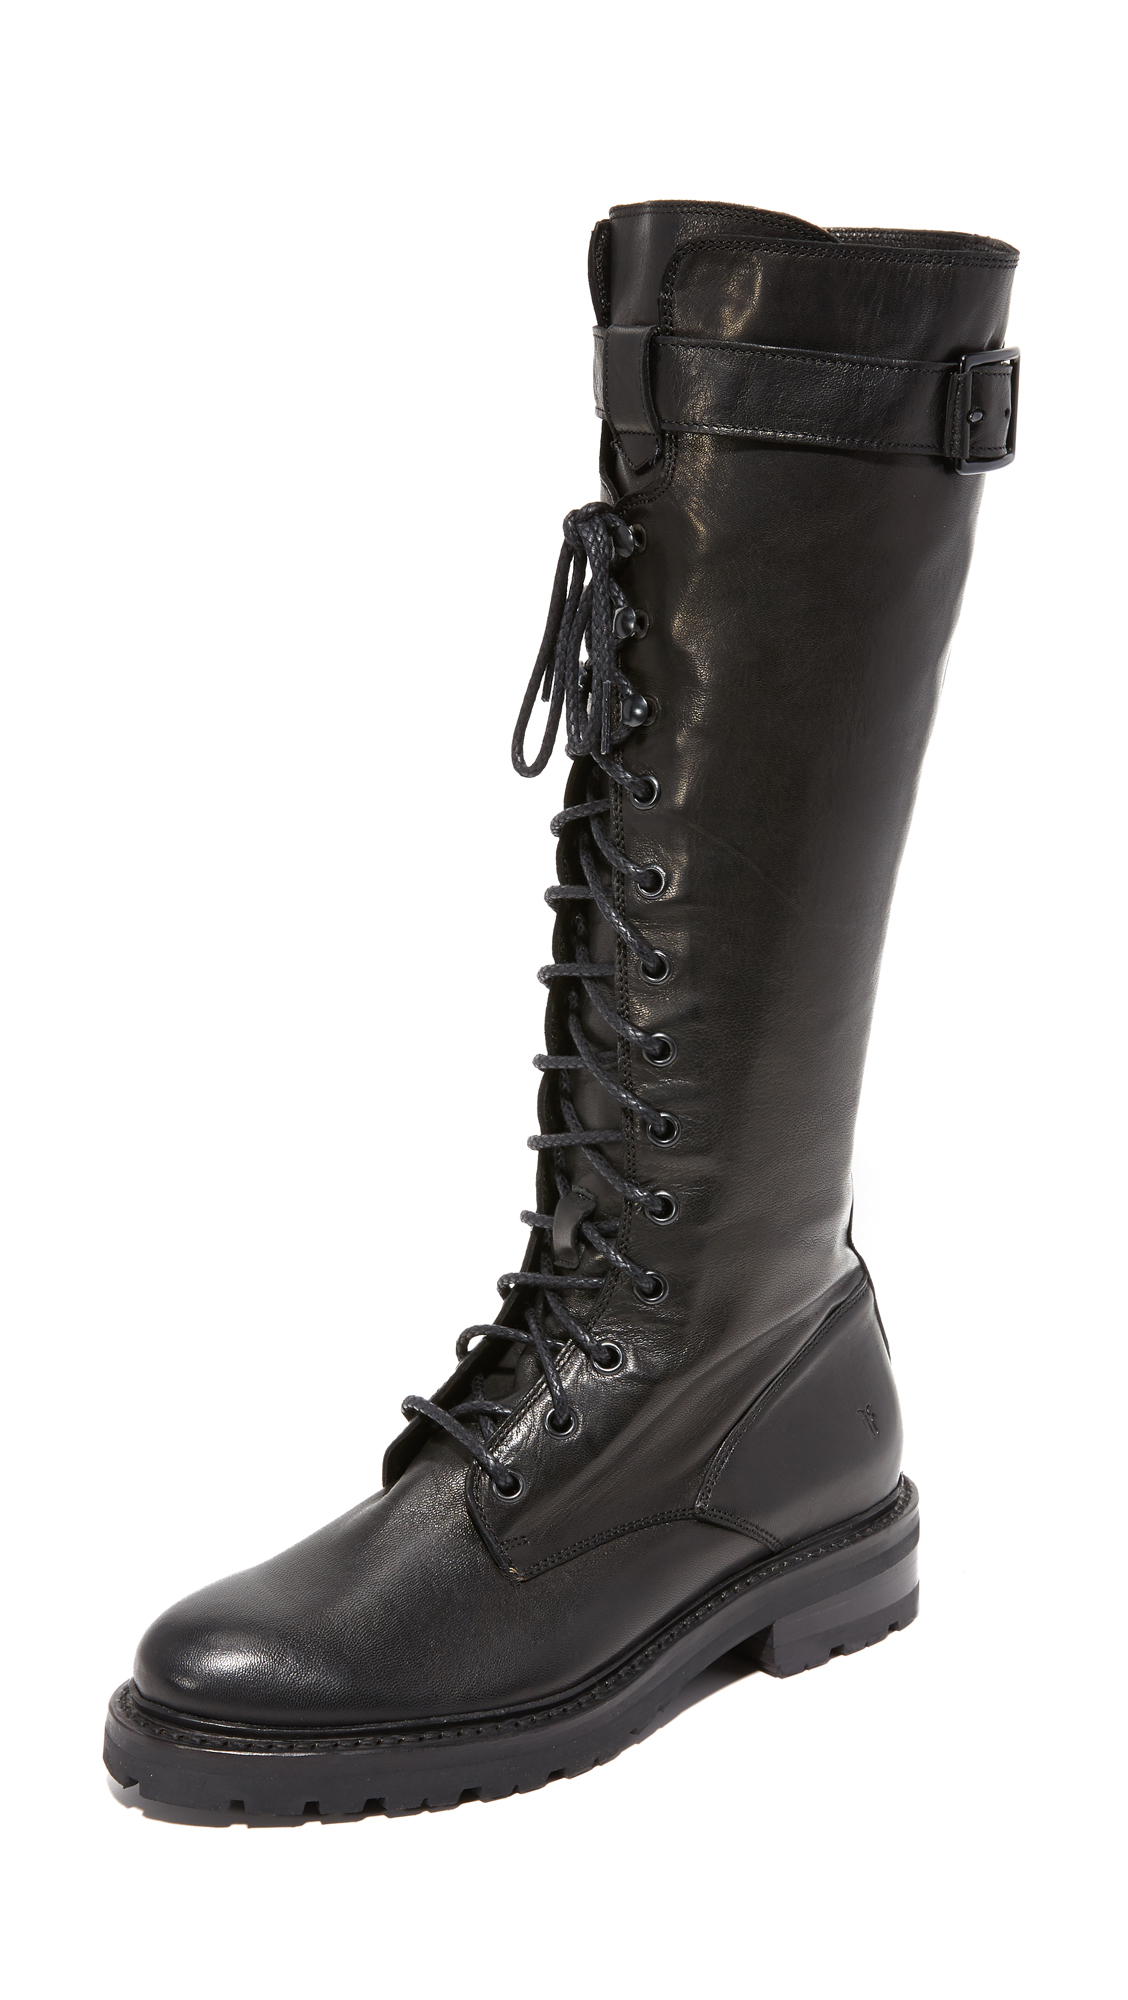 Frye Julie Lace Tall Combat Boots - Black